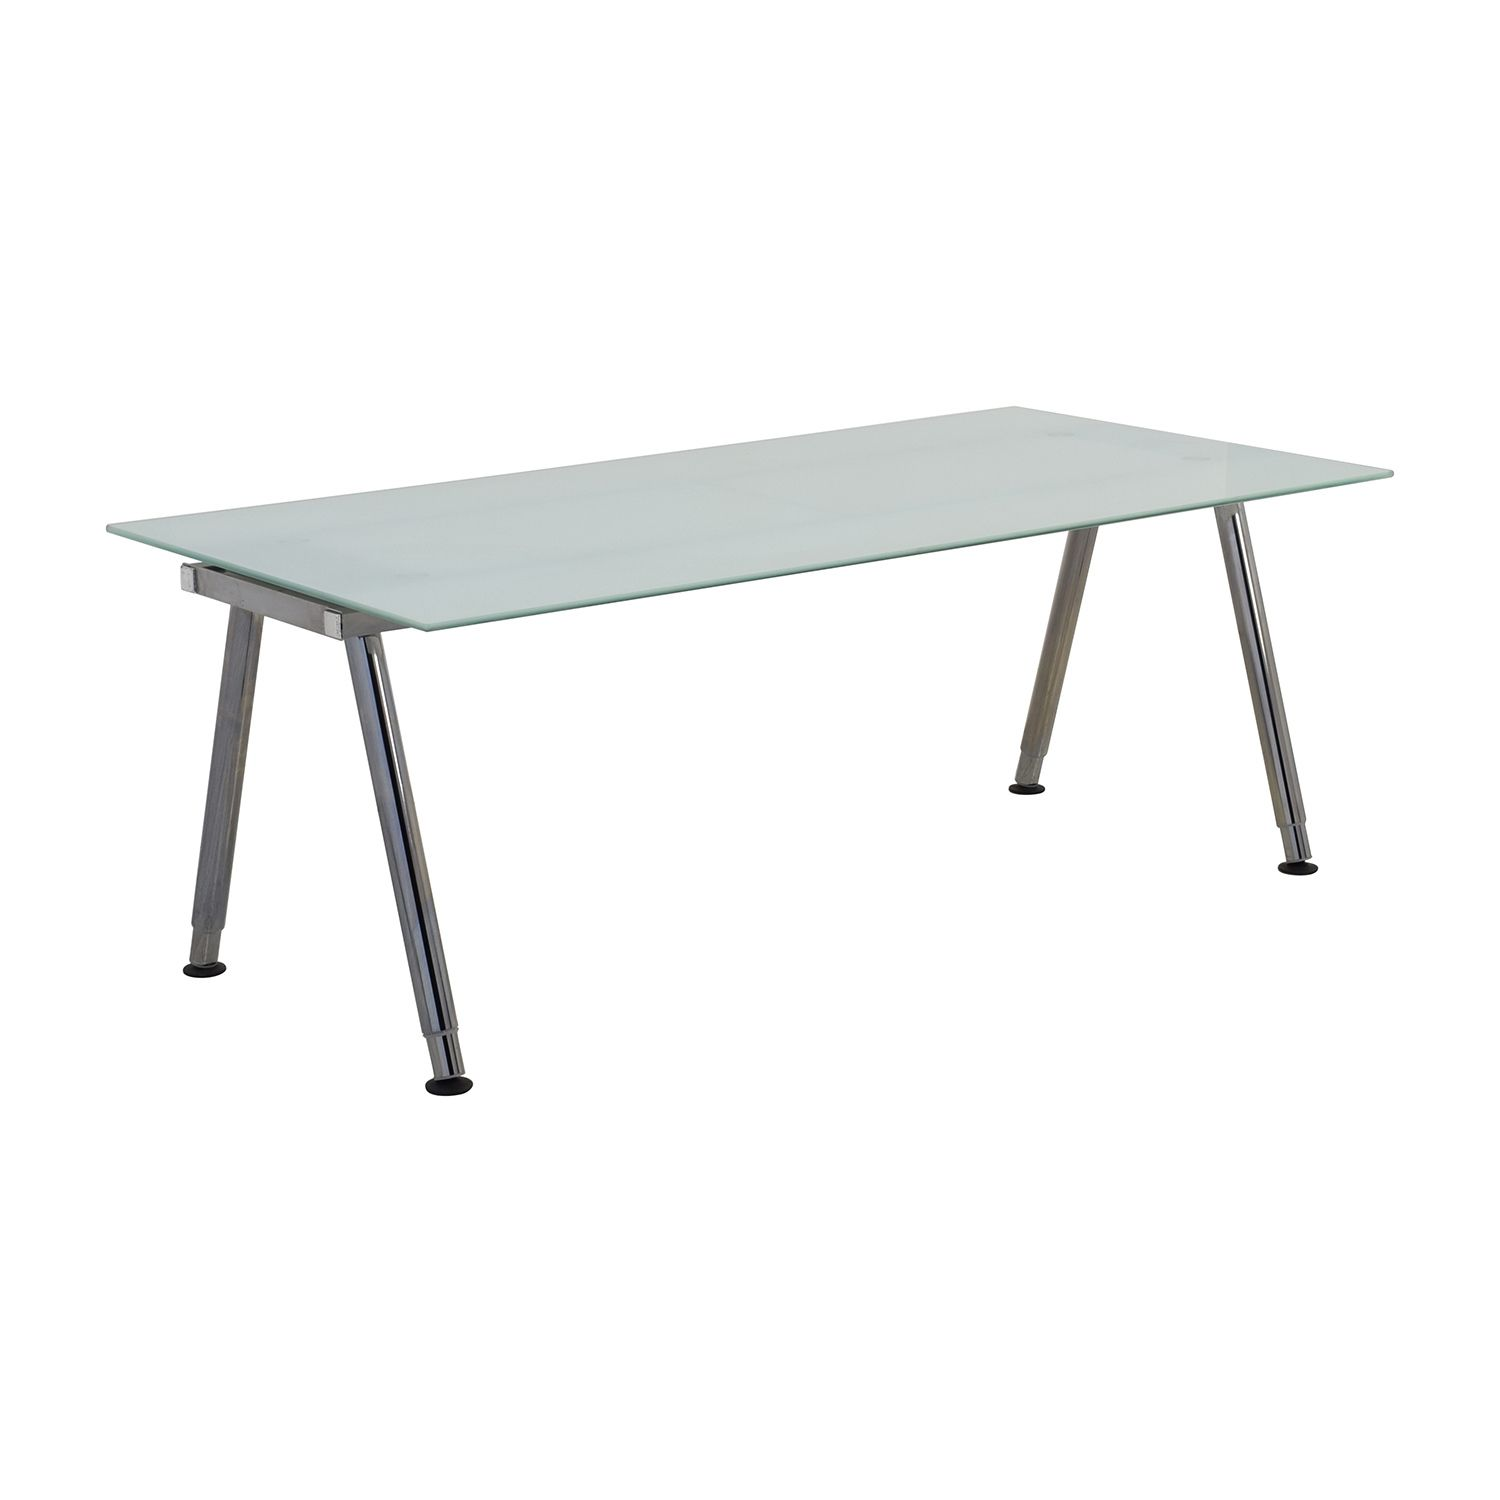 table artur display vika ikea ebay trestle glass gruvan white desk pin